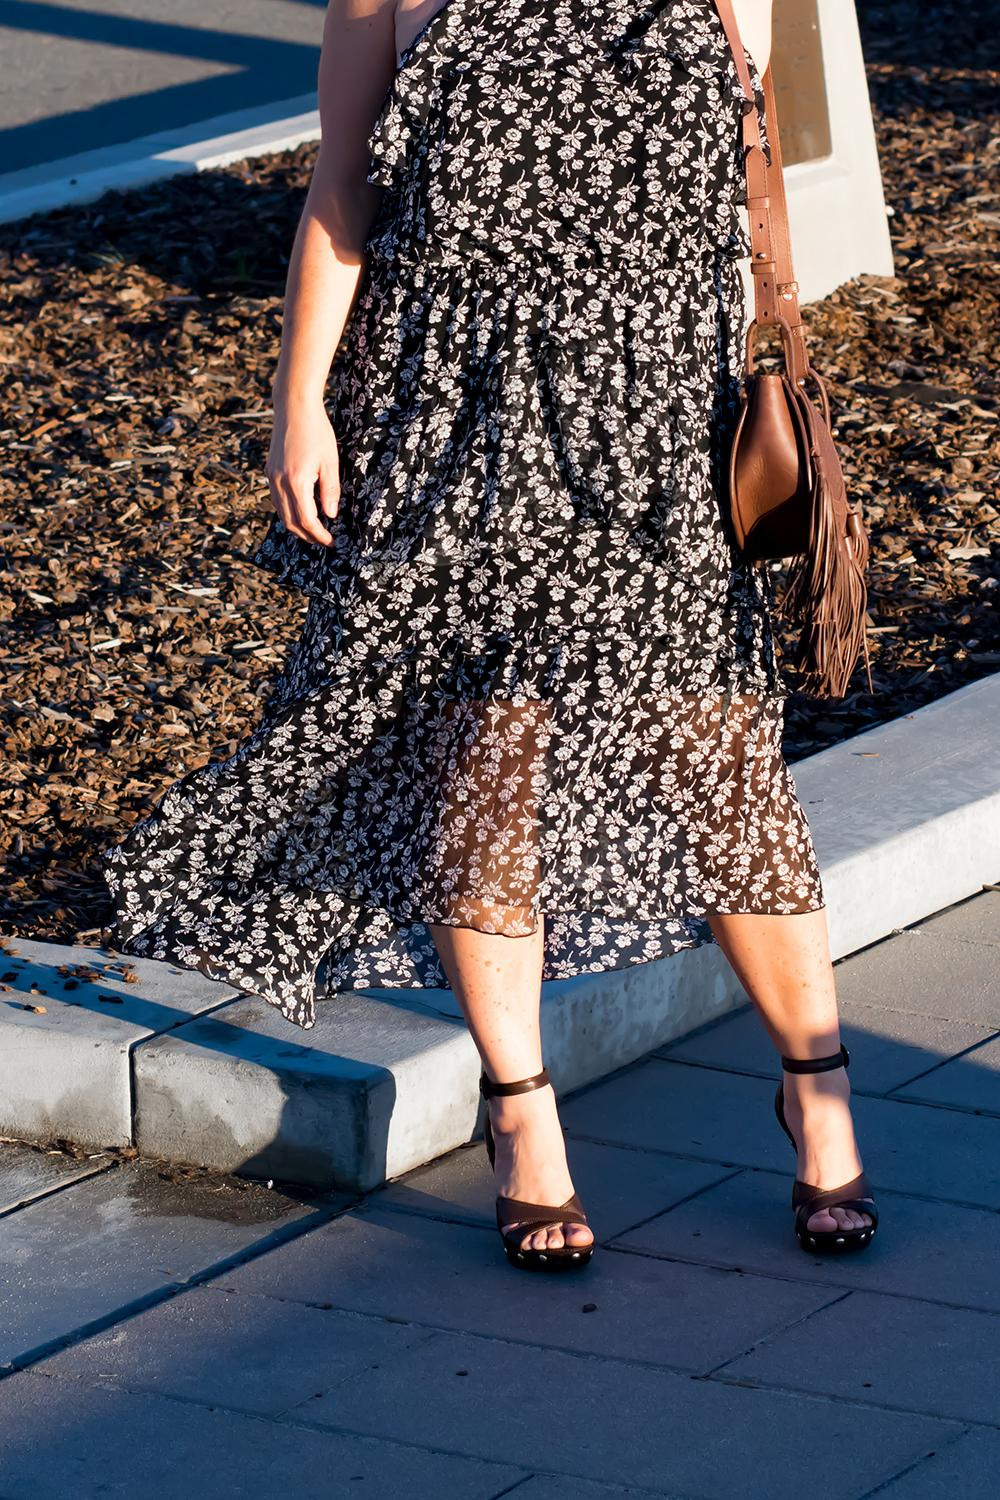 Tiered-Floral-Ruffle-Dress-The-Biggest-Summer-Trends-for-2017-Barefoot-in-LA-Fashion-Blog-Style-Ideas-Outfits-1205